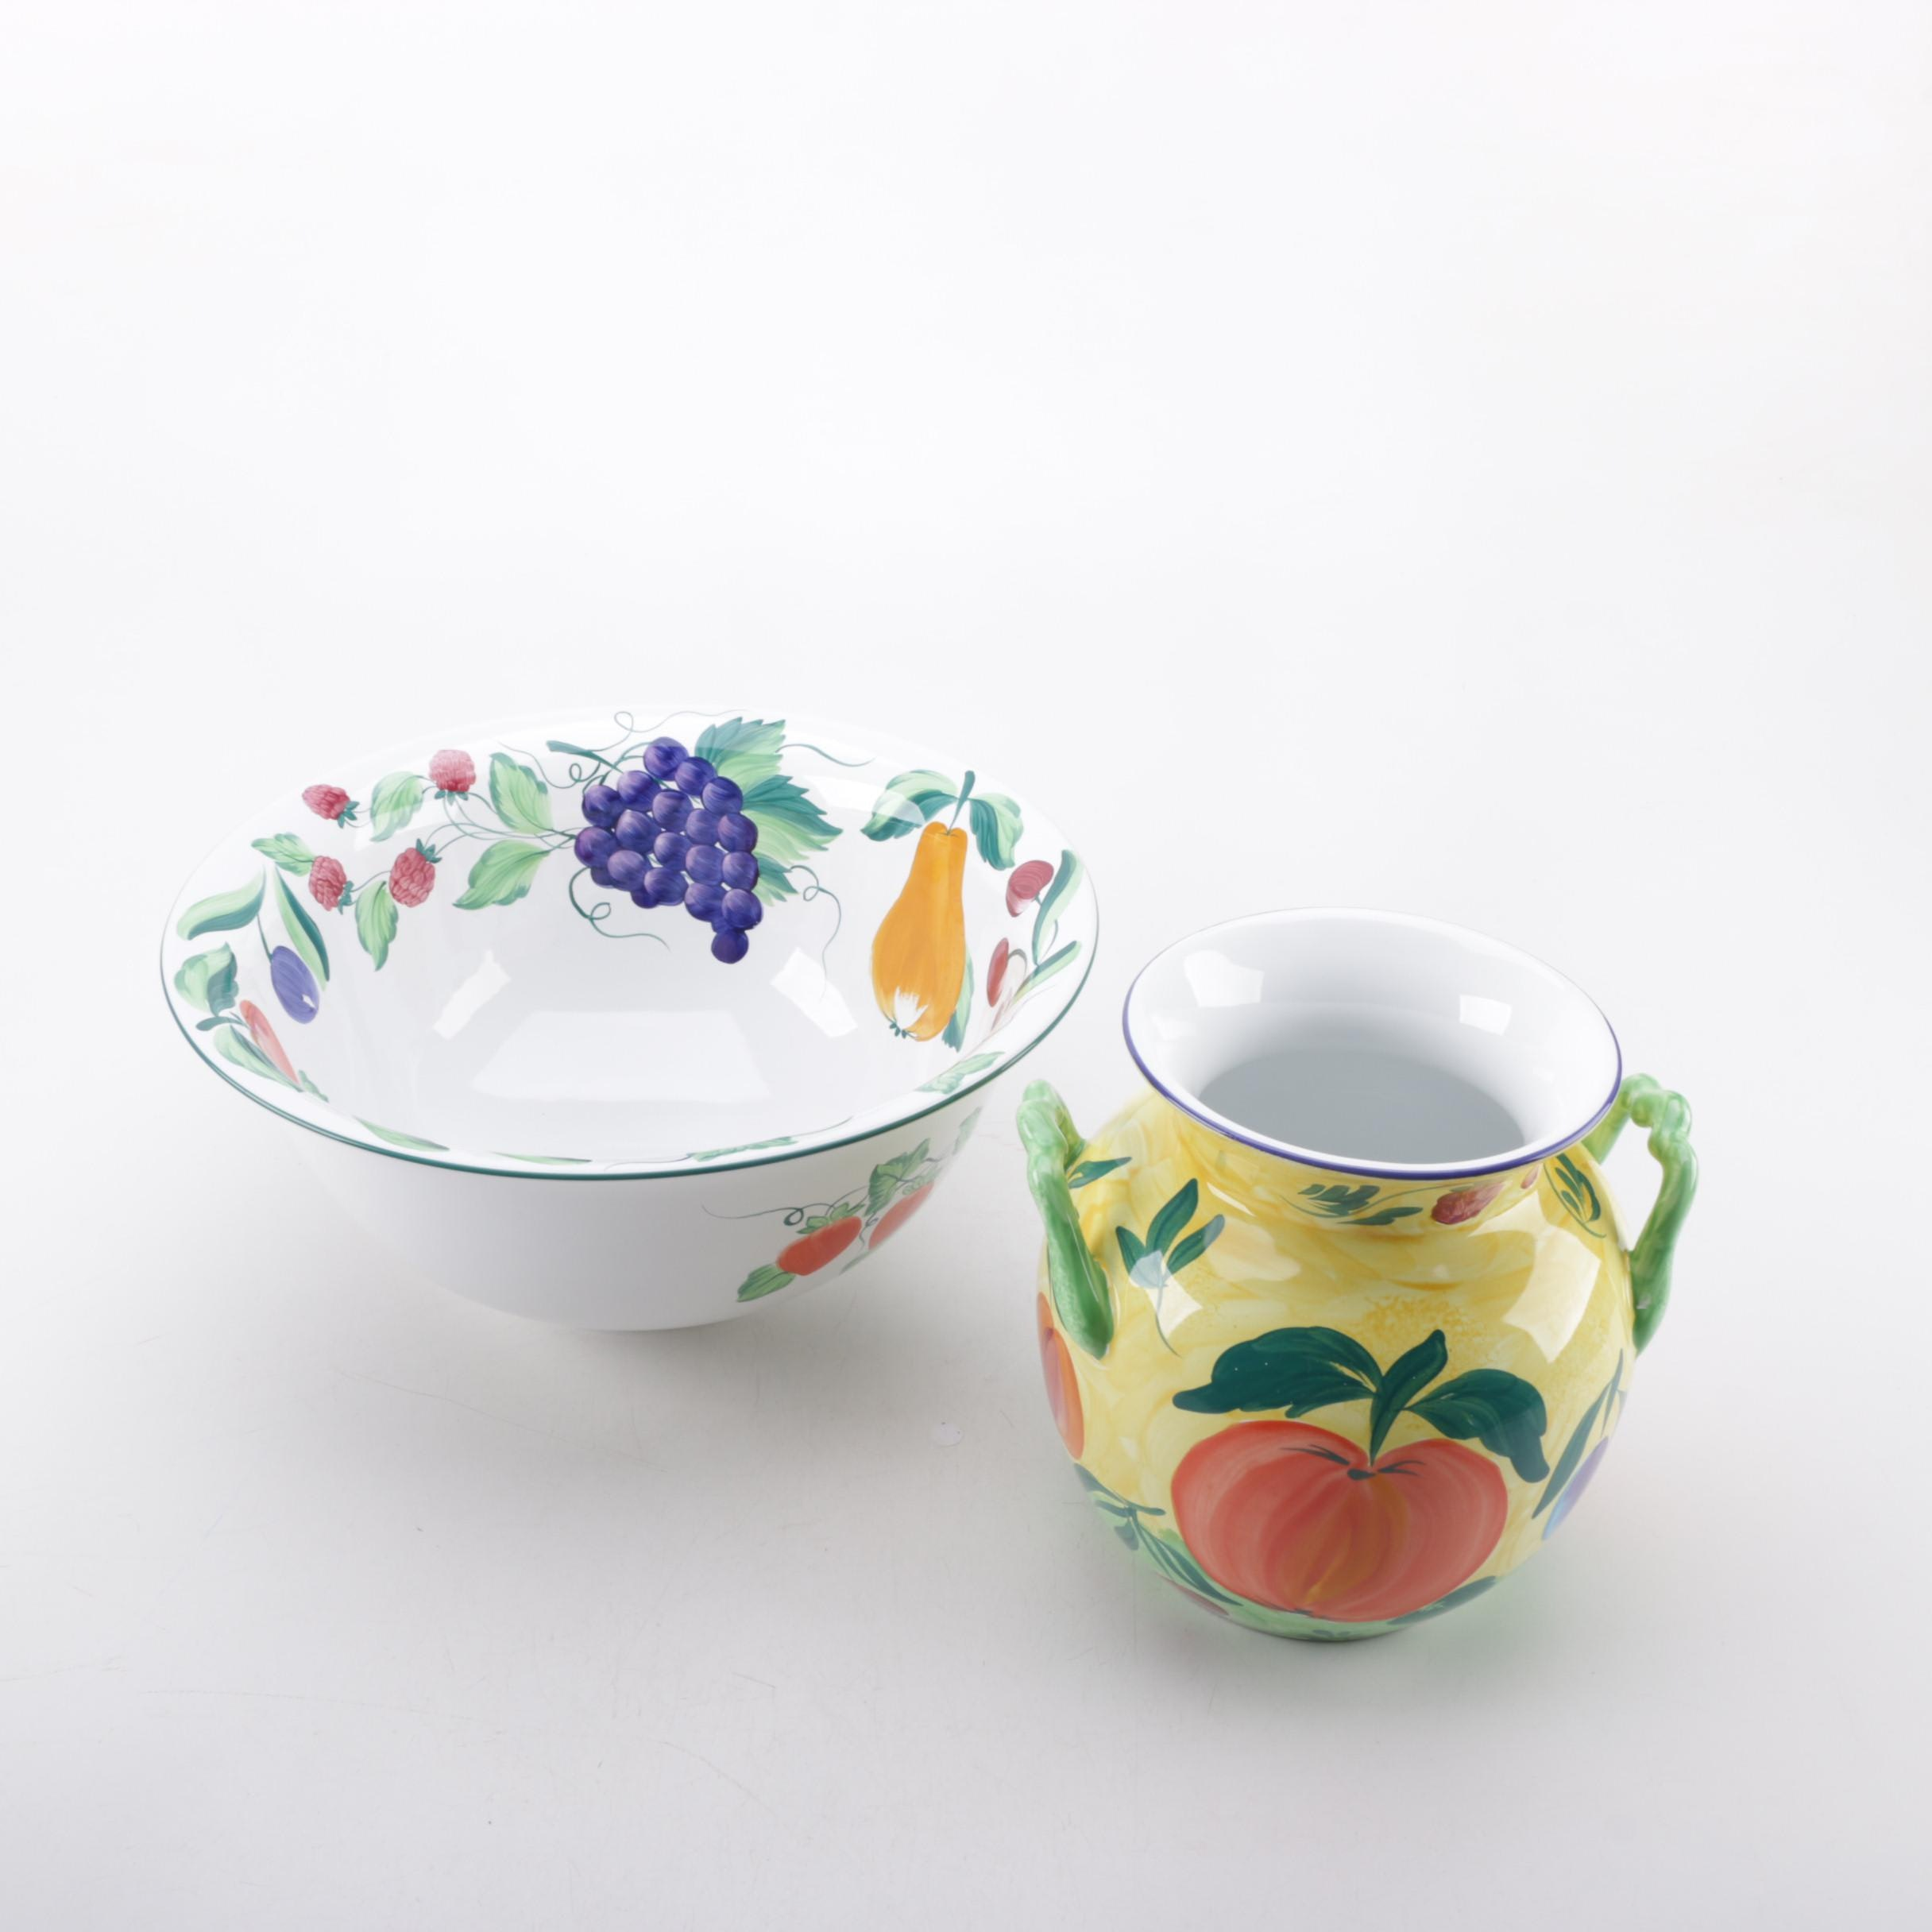 Herend Village Pottery Painted Pottery Serving Bowl and Vase with a Fruit Motif